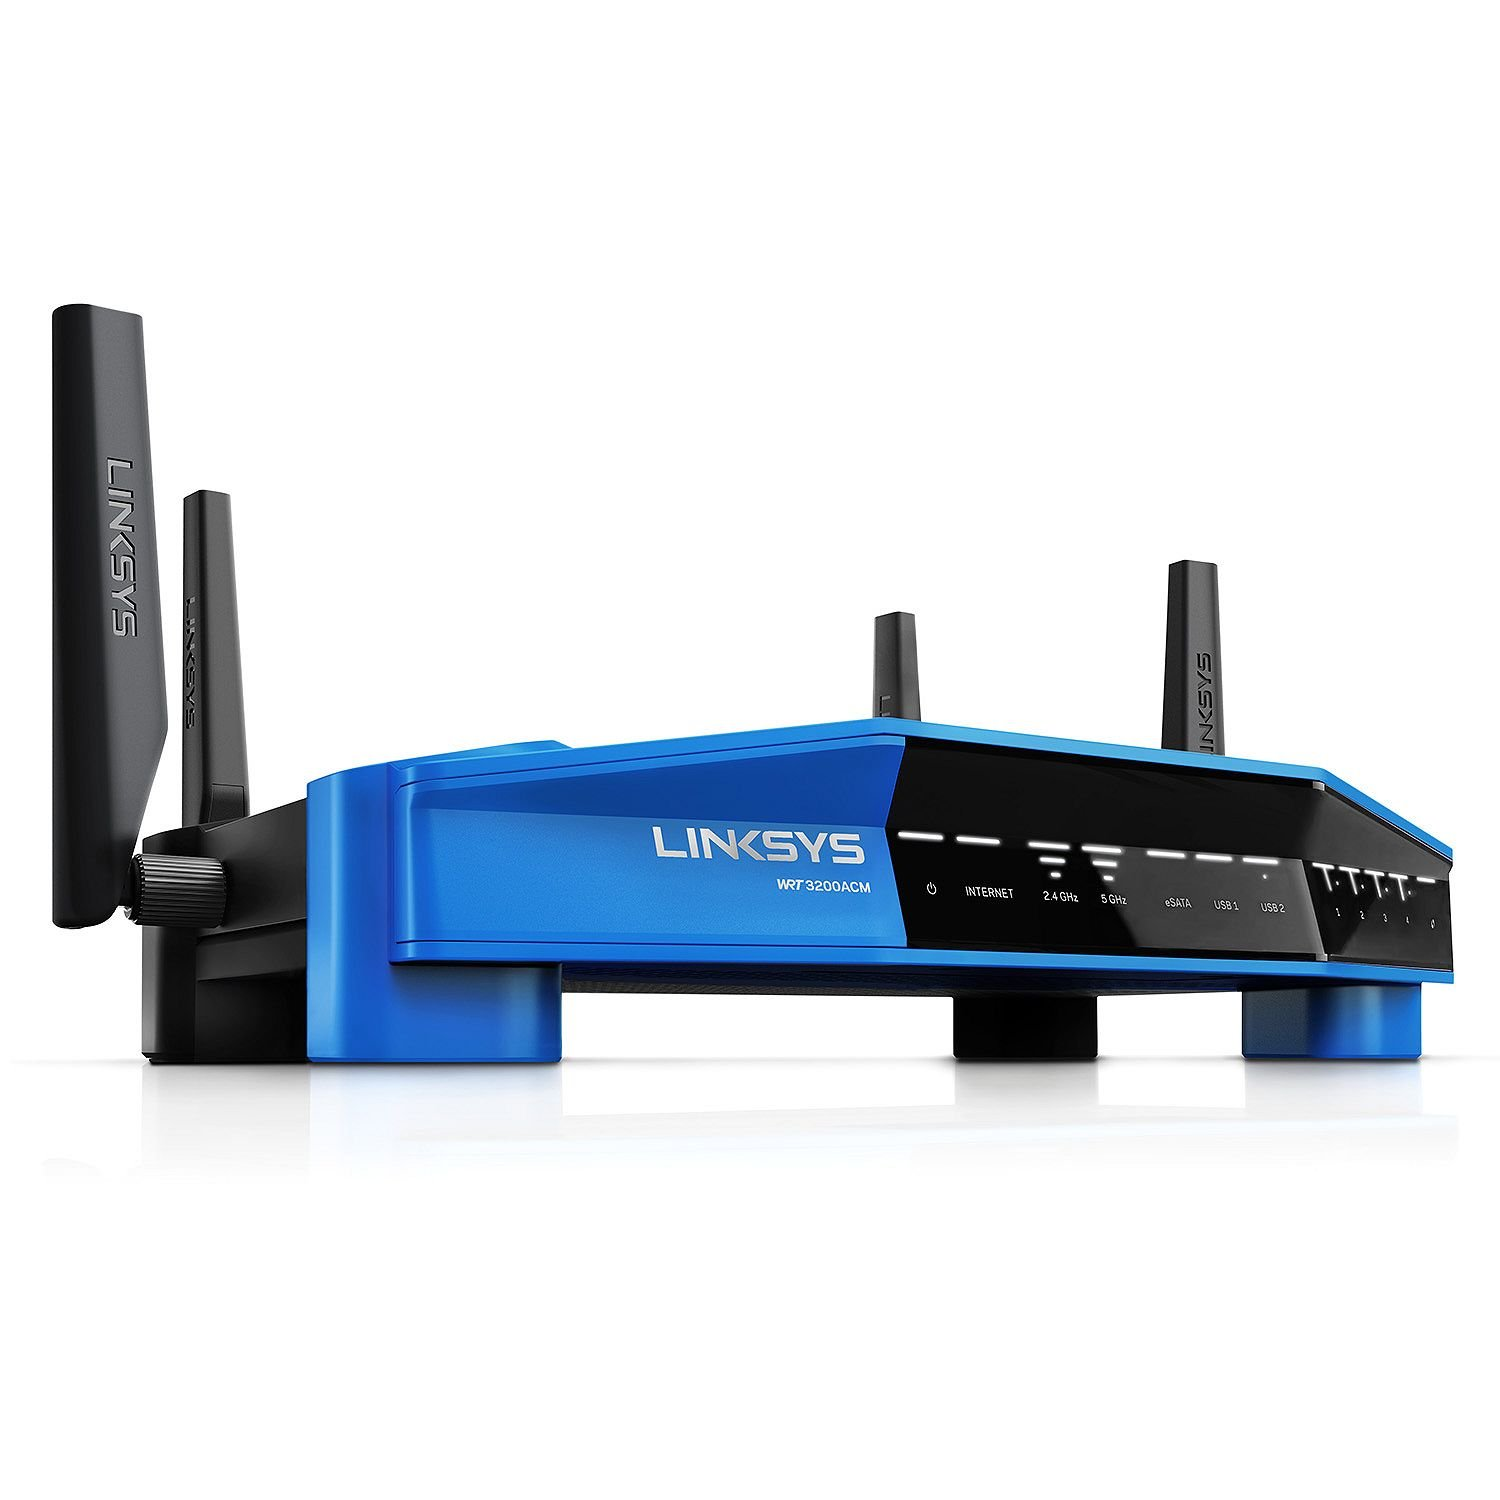 Linksys WRT3200ACMA-4T Linksys Wi-Fi Router with Bonus AC600 USB Adapter by Linksys